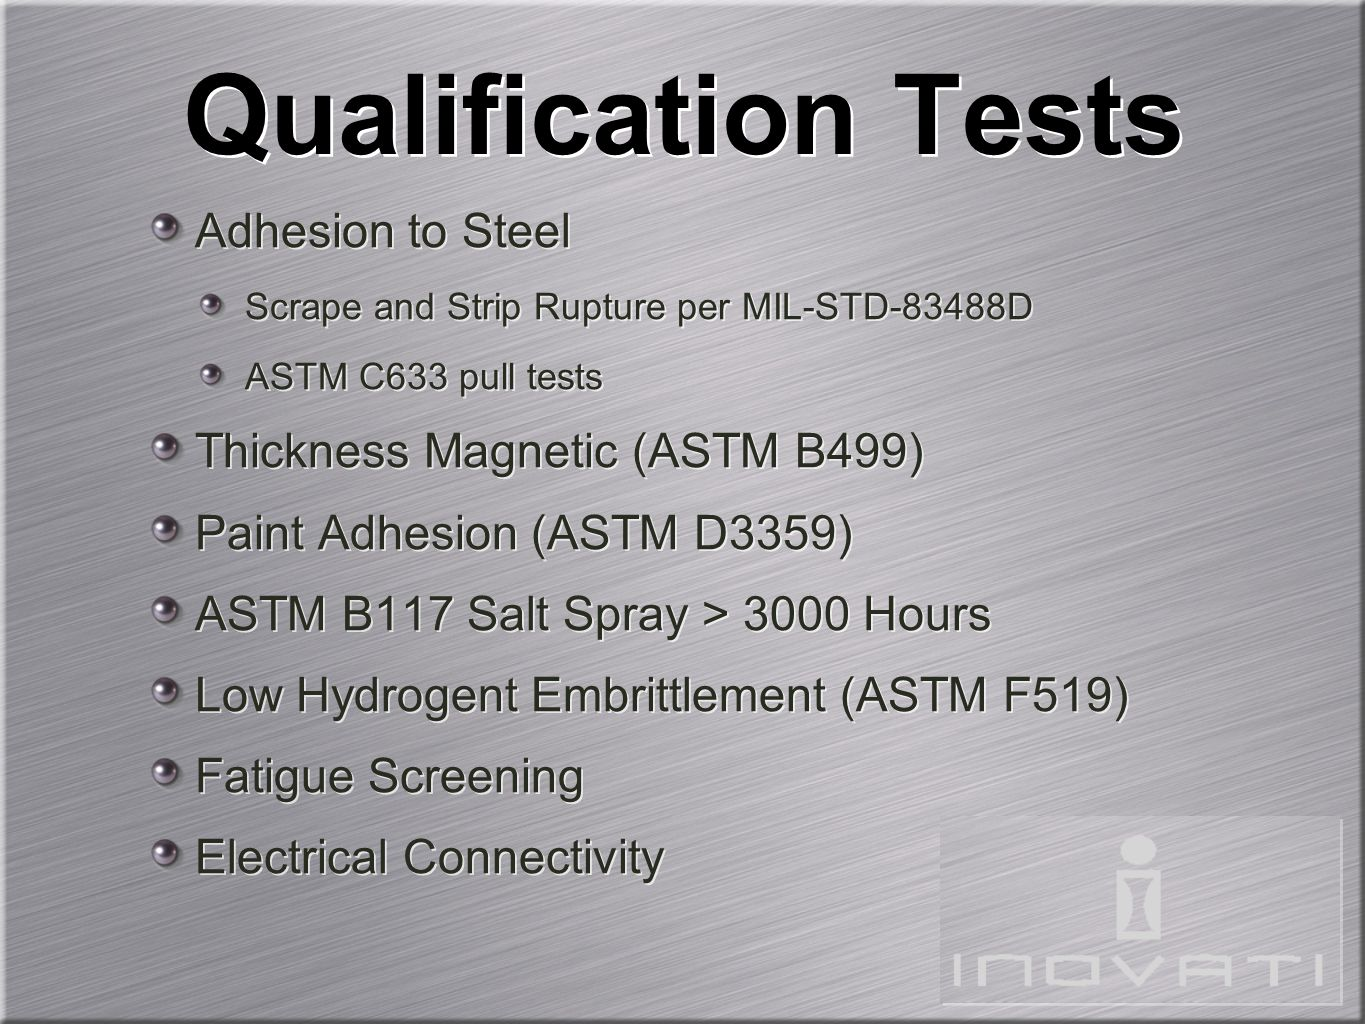 Qualification Tests Adhesion to Steel Scrape and Strip Rupture per MIL-STD-83488D ASTM C633 pull tests Thickness Magnetic (ASTM B499) Paint Adhesion (ASTM D3359) ASTM B117 Salt Spray > 3000 Hours Low Hydrogent Embrittlement (ASTM F519) Fatigue Screening Electrical Connectivity Adhesion to Steel Scrape and Strip Rupture per MIL-STD-83488D ASTM C633 pull tests Thickness Magnetic (ASTM B499) Paint Adhesion (ASTM D3359) ASTM B117 Salt Spray > 3000 Hours Low Hydrogent Embrittlement (ASTM F519) Fatigue Screening Electrical Connectivity